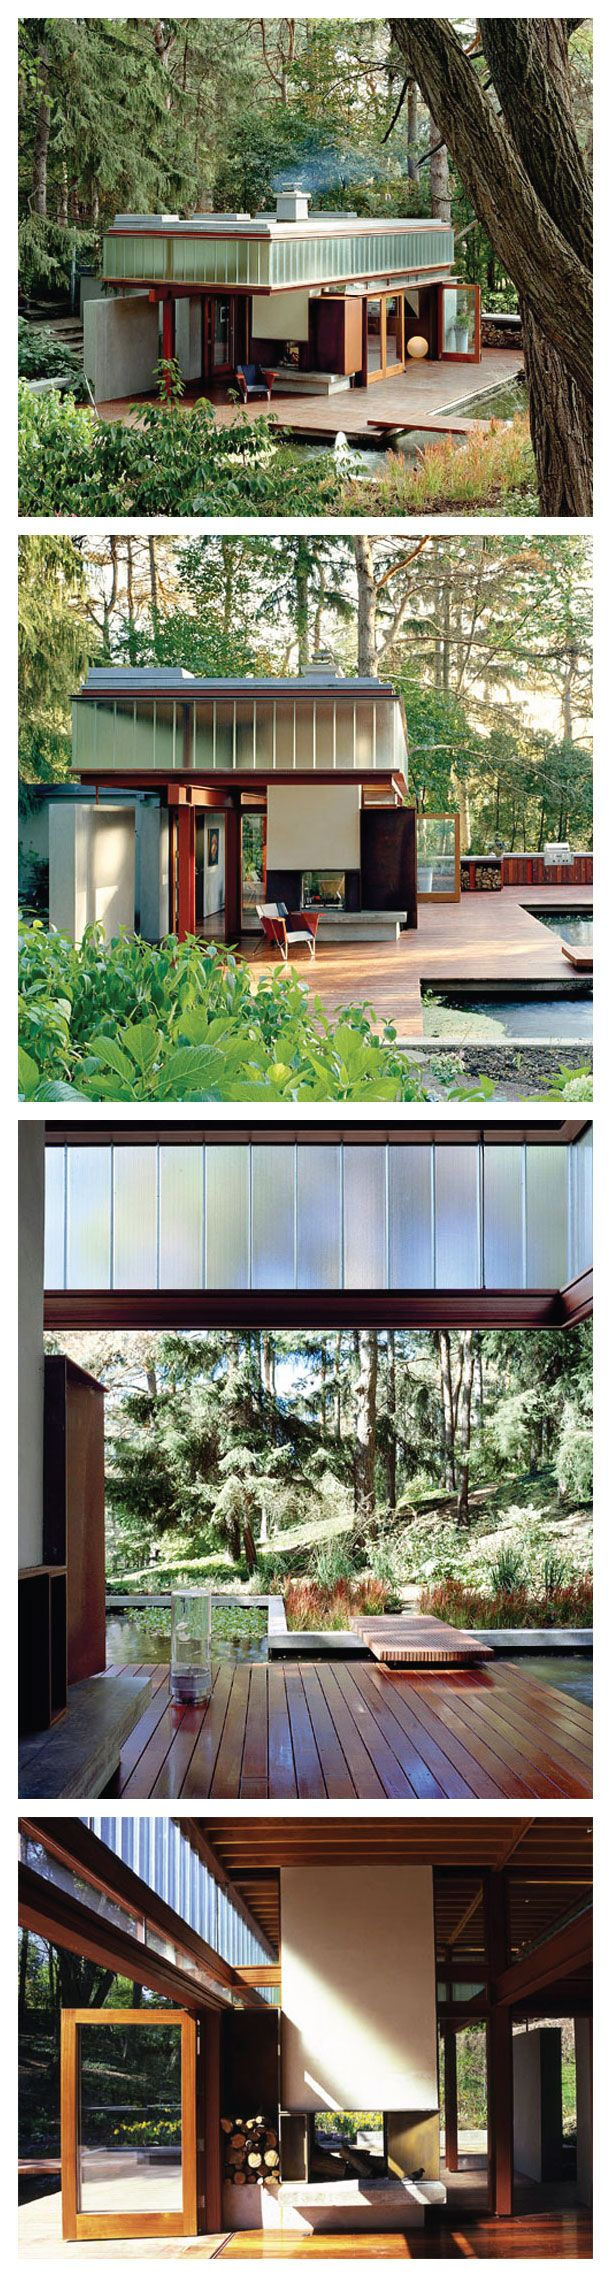 The Ravine Guest Home by Shim-Sutcliffe Architects